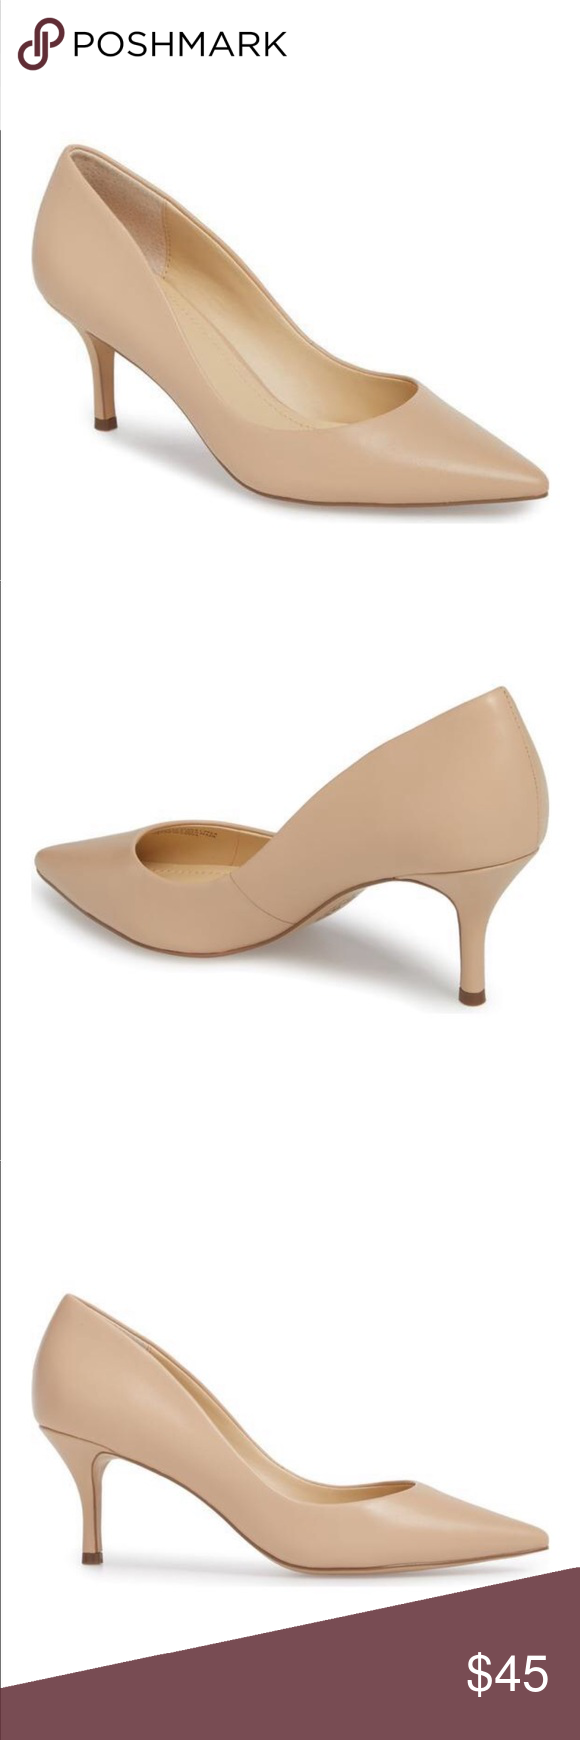 New Charles By Charles David Pumps In 2020 Shoes Women Heels Pumps Pointy Toe Pumps